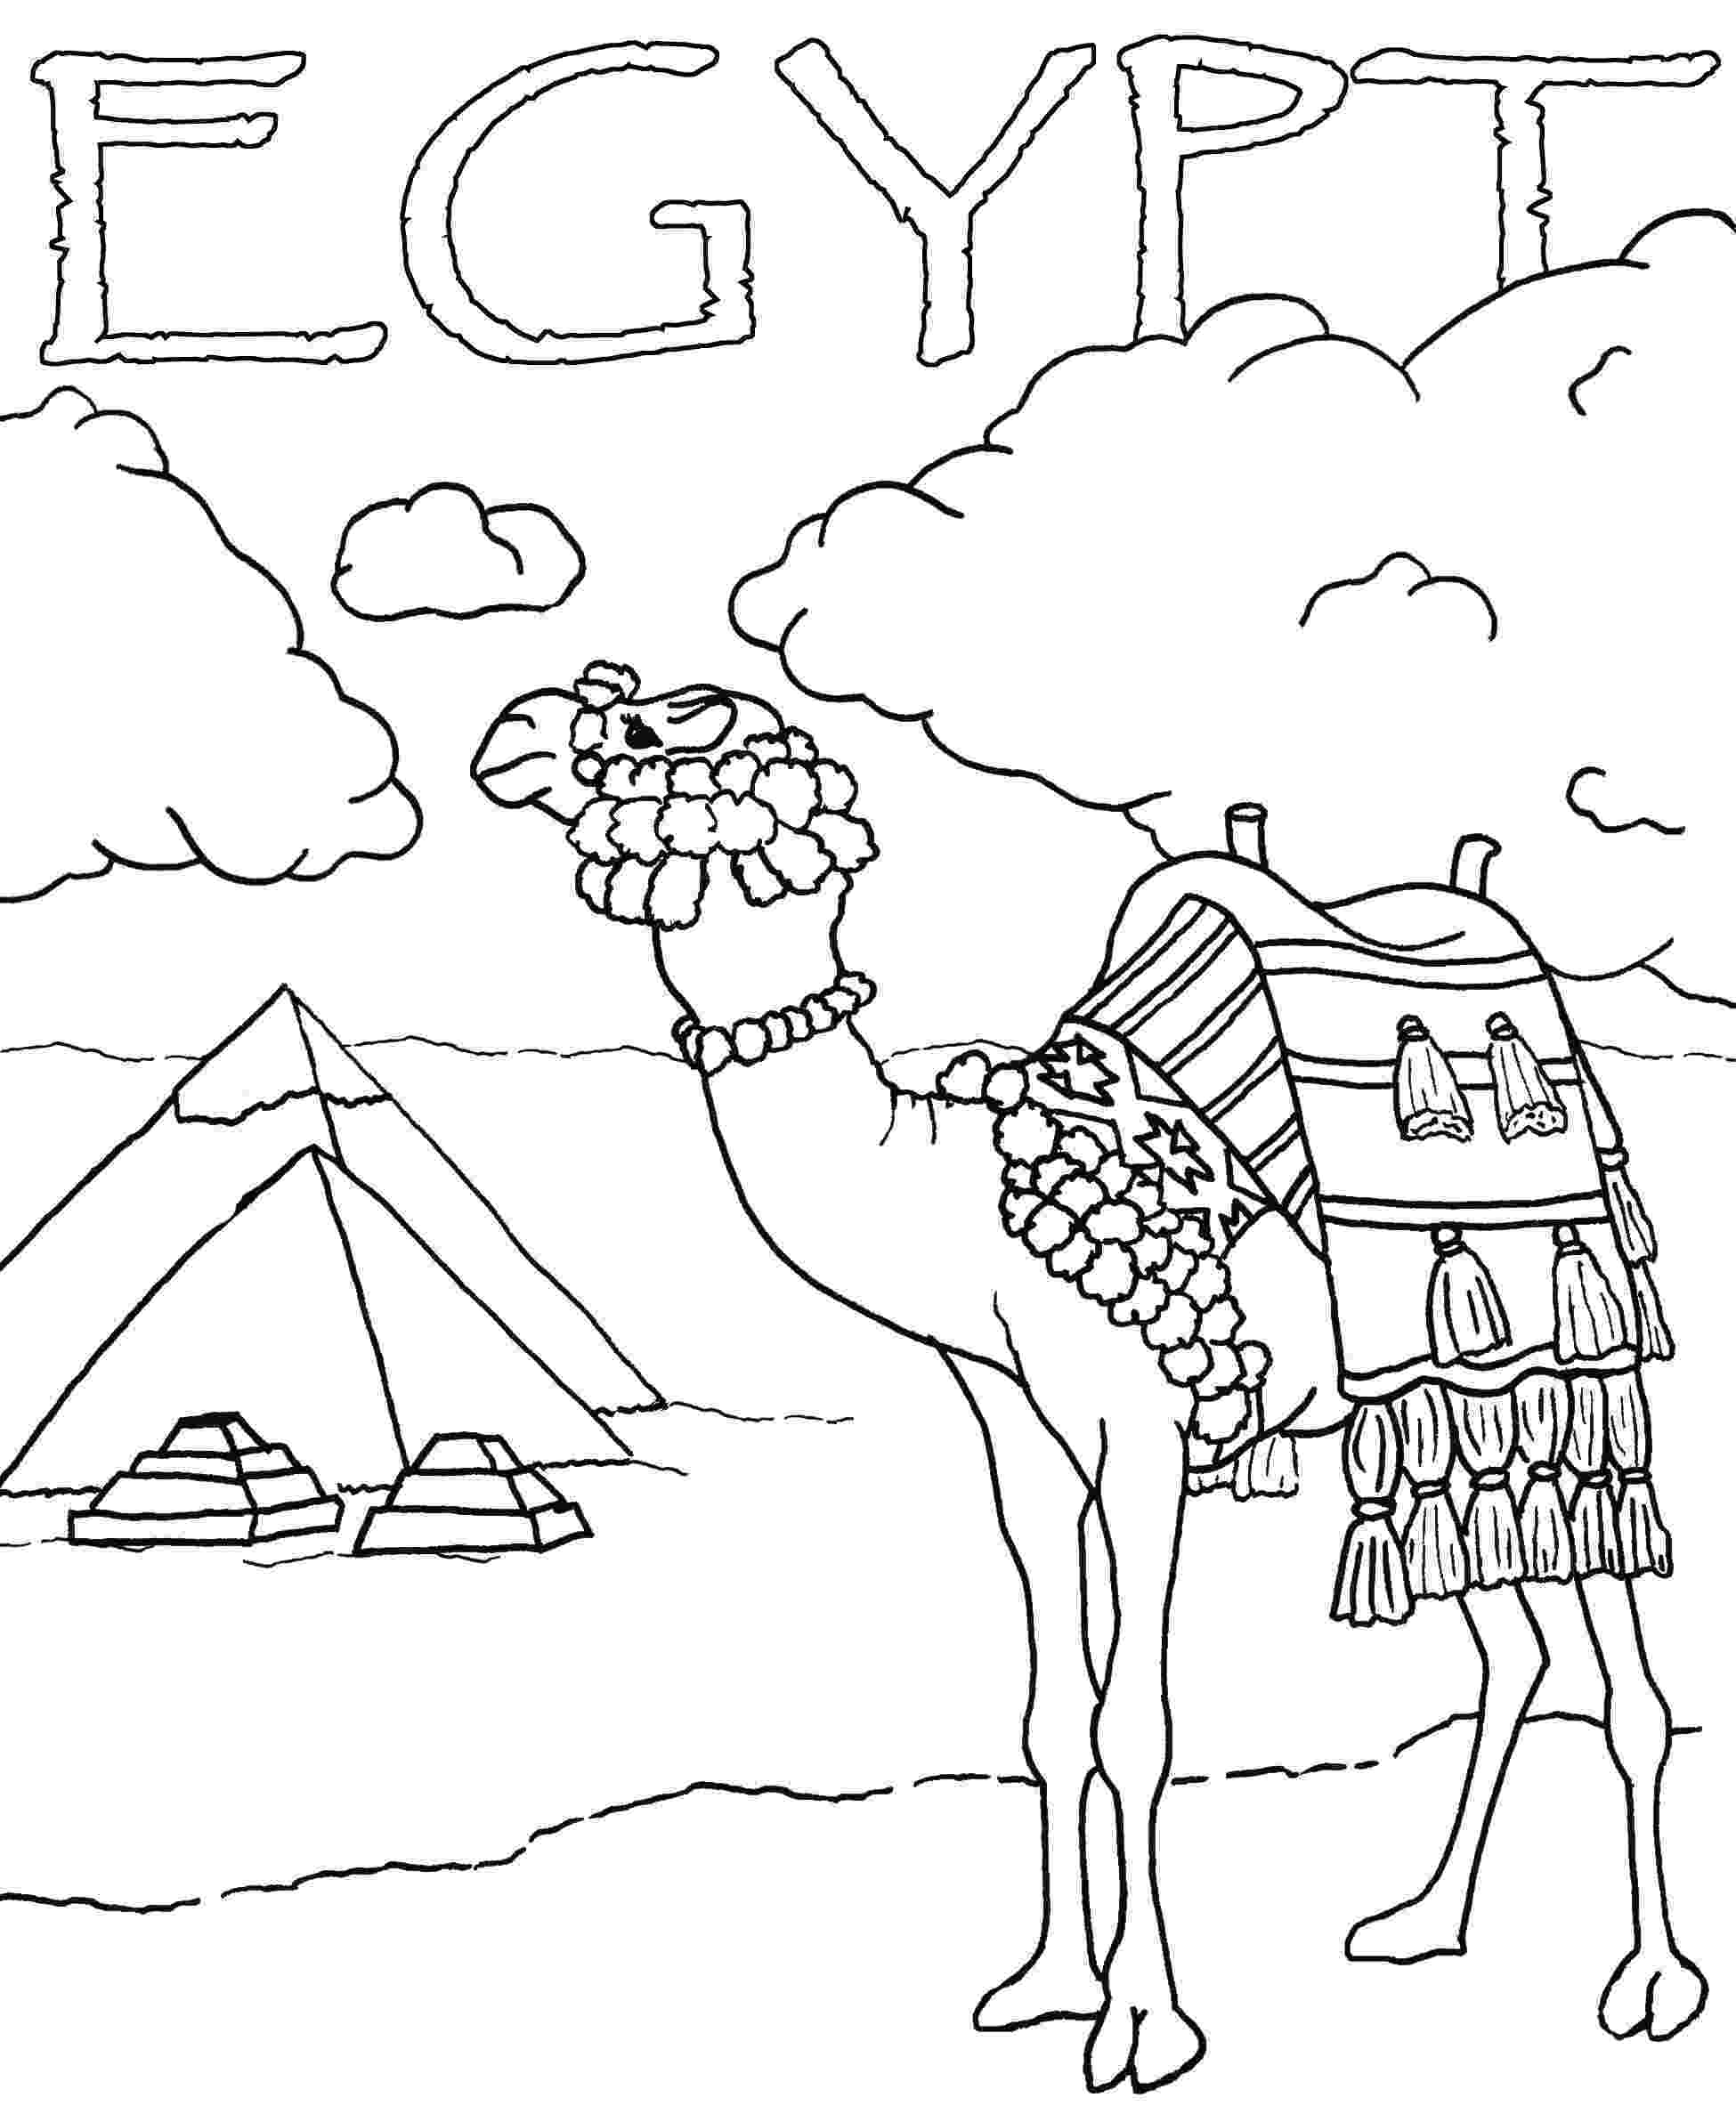 egypt coloring pages ancient egypt coloring pages to download and print for free coloring pages egypt 1 2